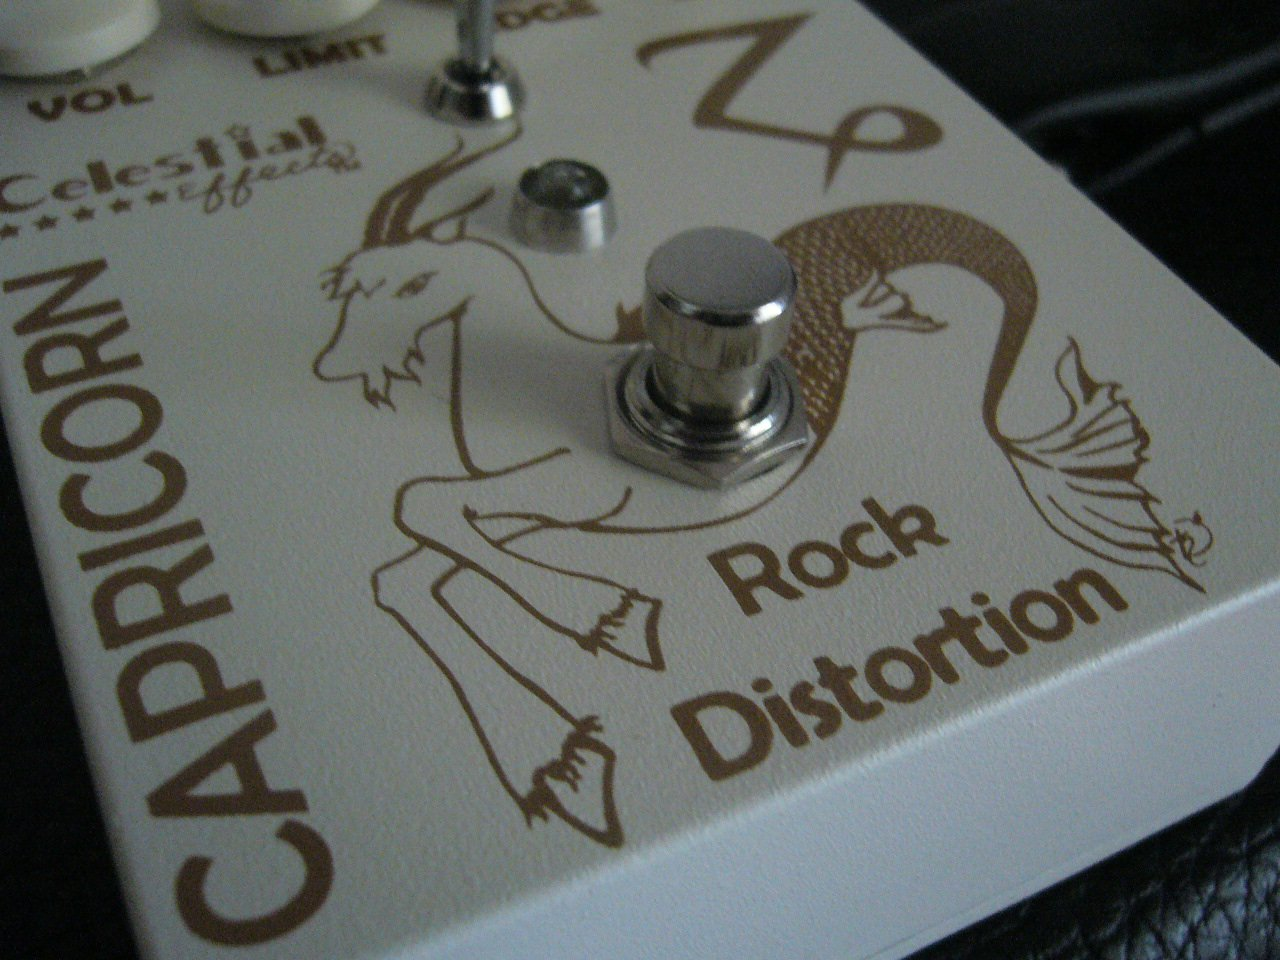 Capricorn Rock Distortion